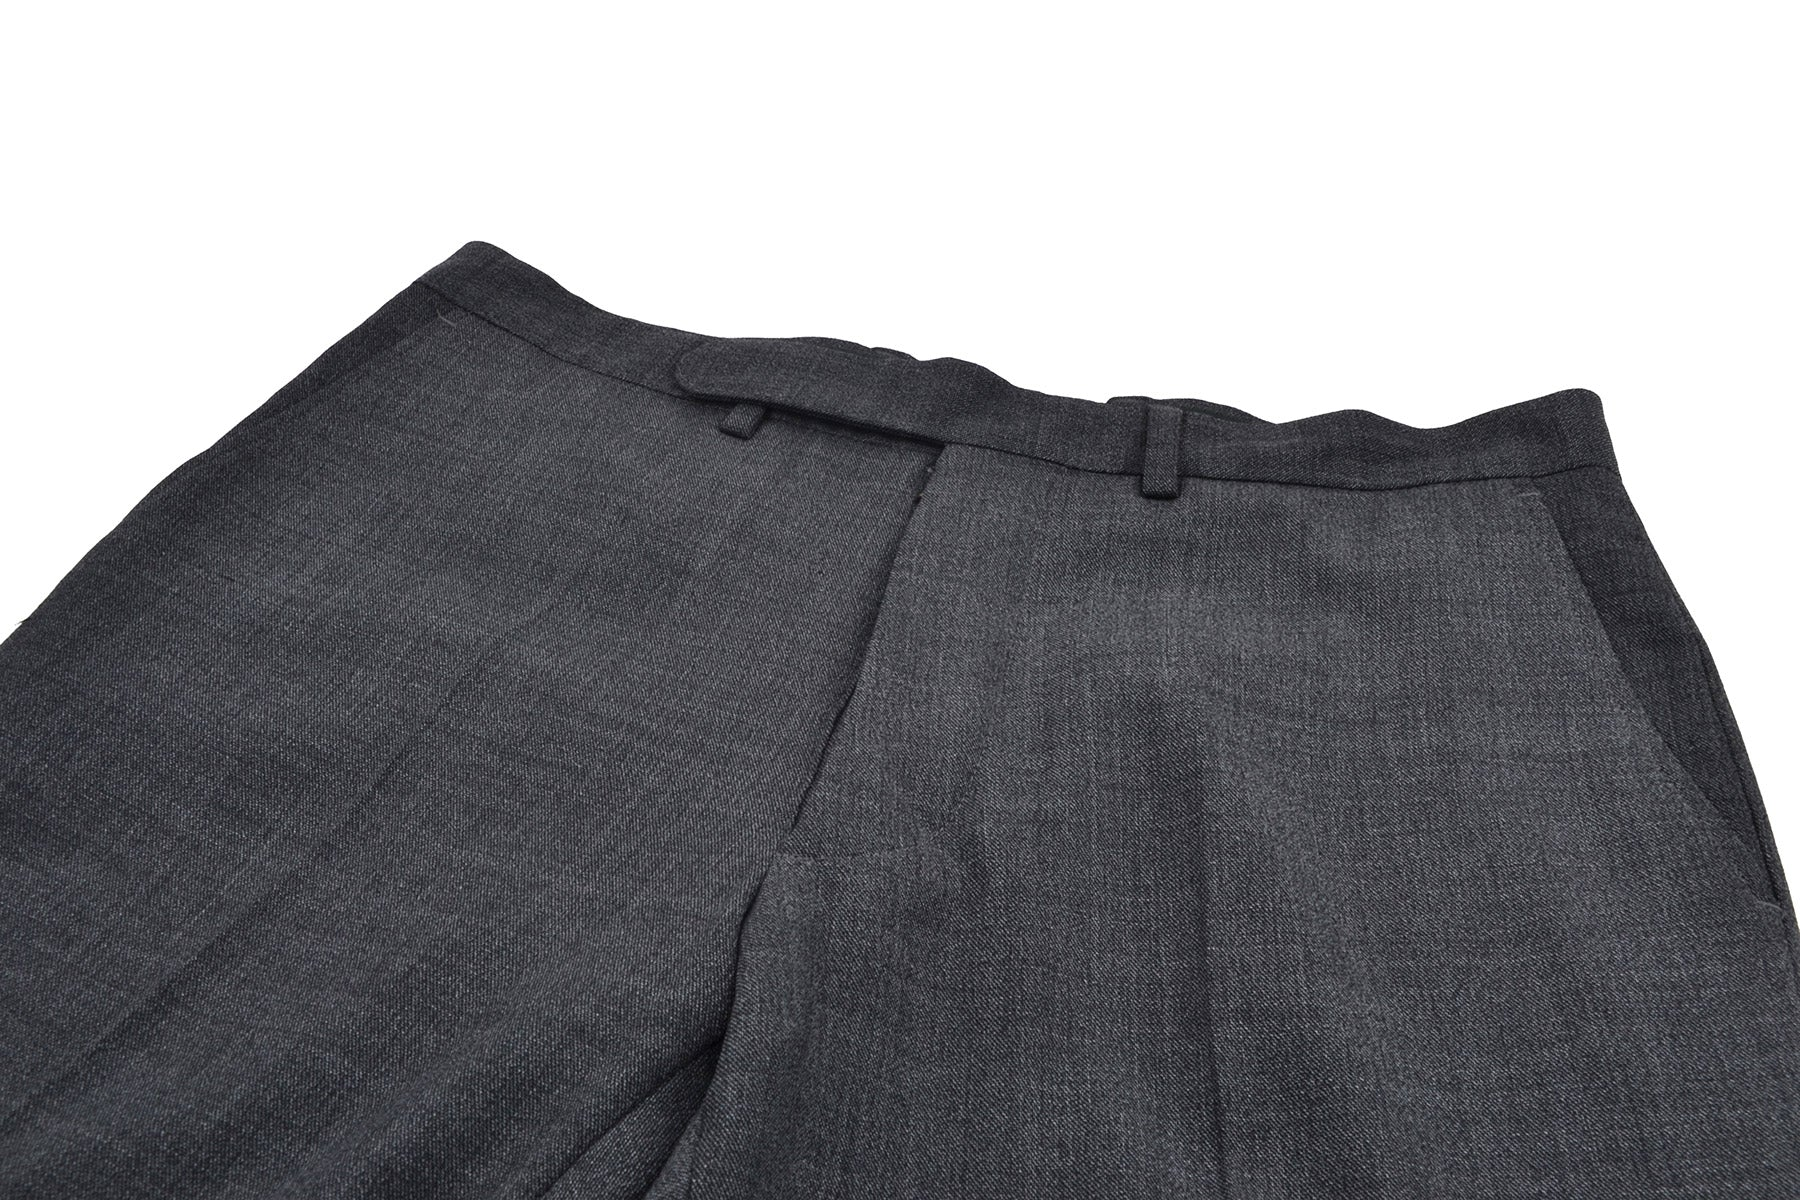 2002 A/W ANATOMICAL PANTS IN DARK STRETCH WOOL